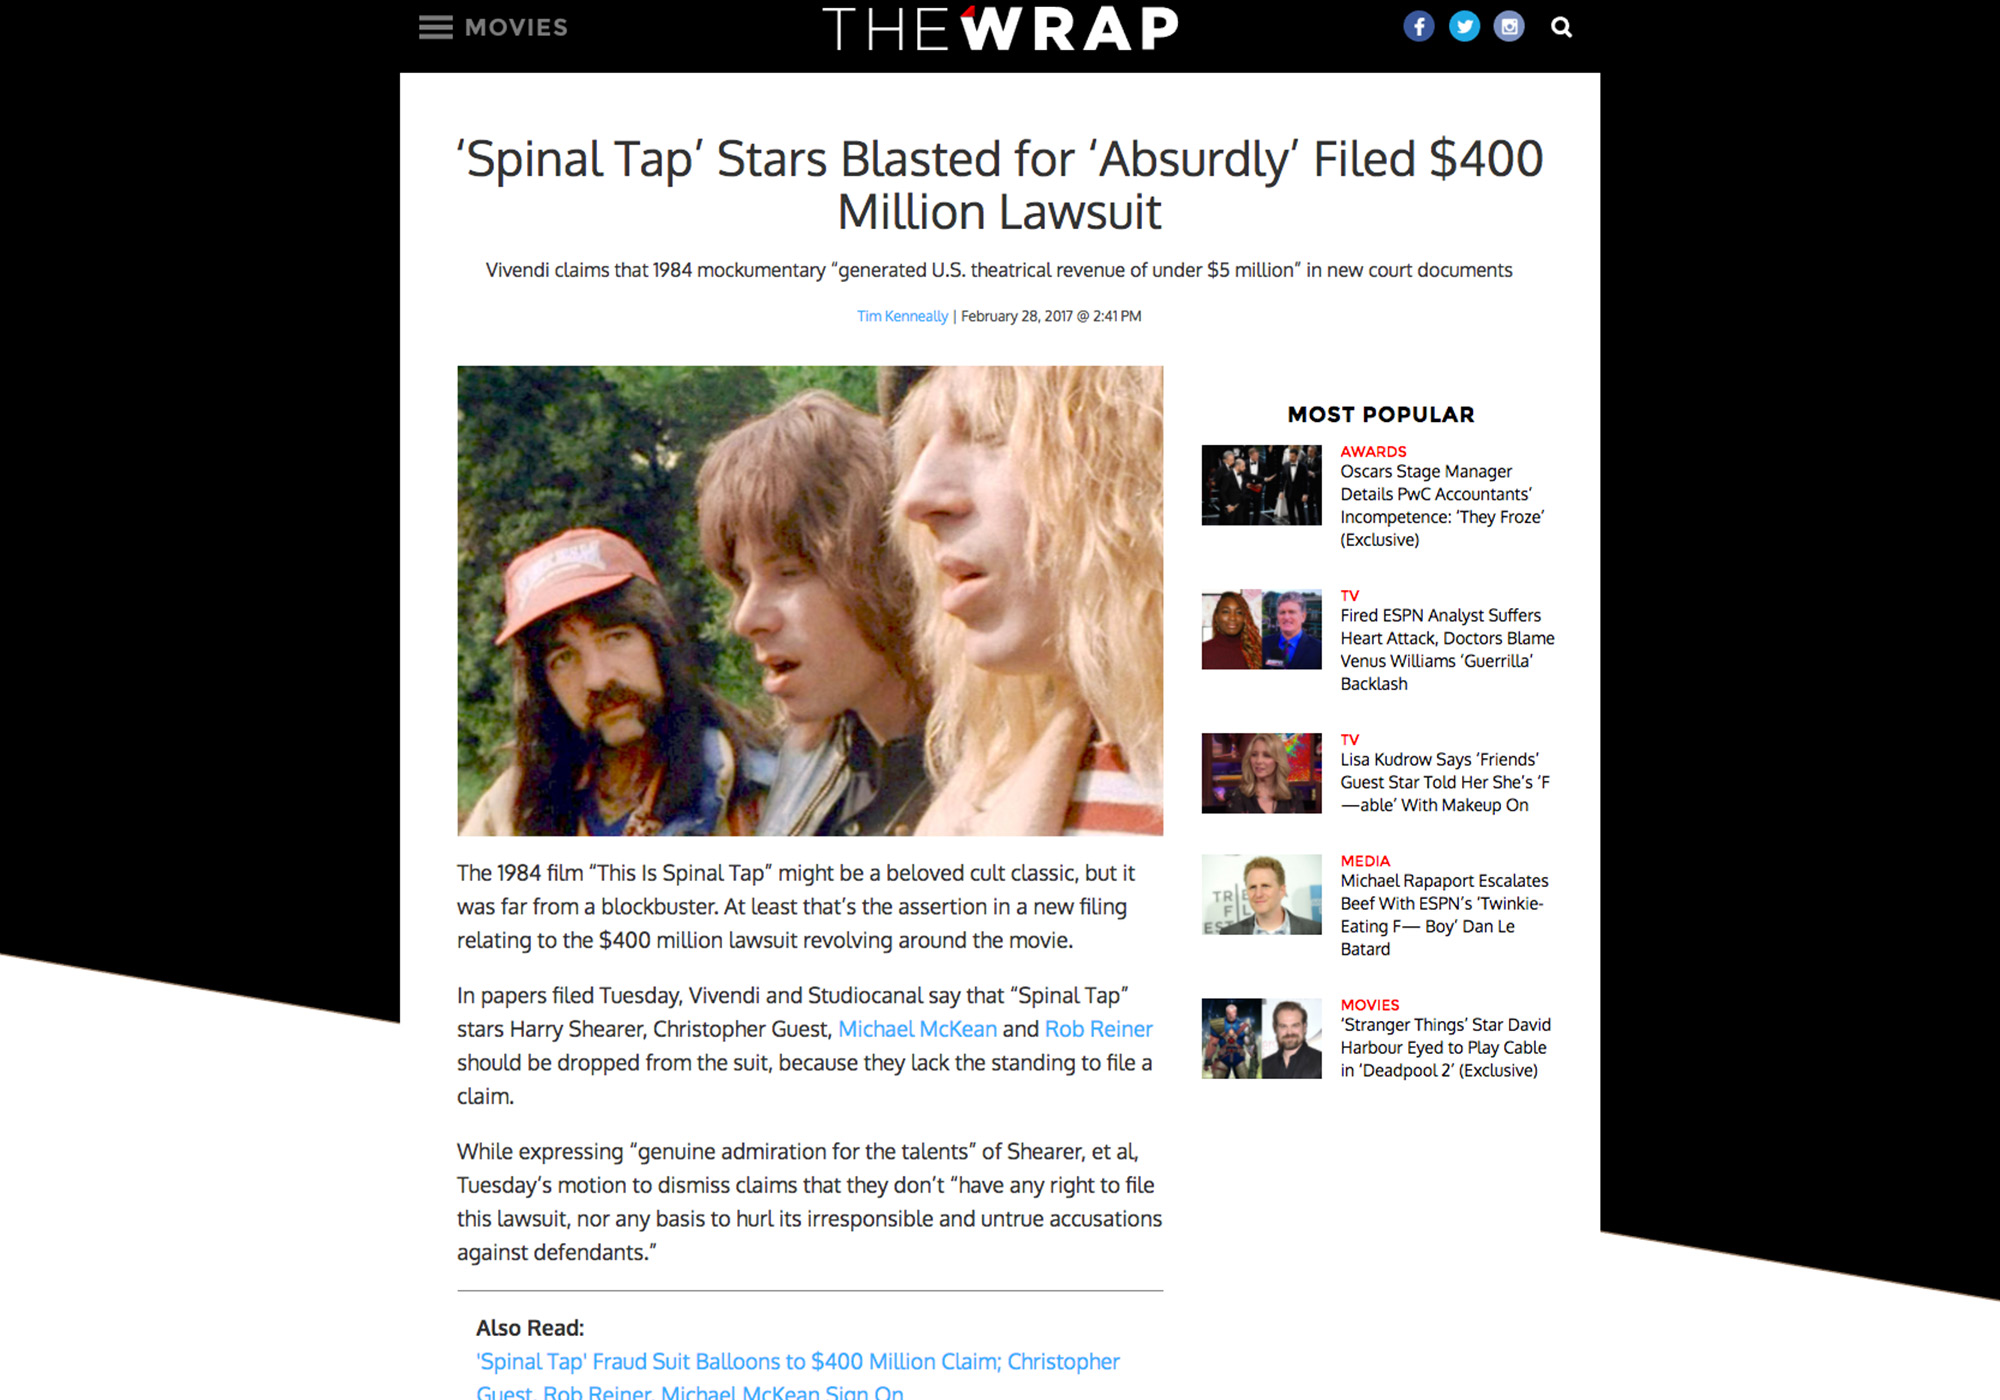 Fairness Rocks News 'Spinal Tap' Stars Blasted for 'Absurdly' Filed $400 Million Lawsuit